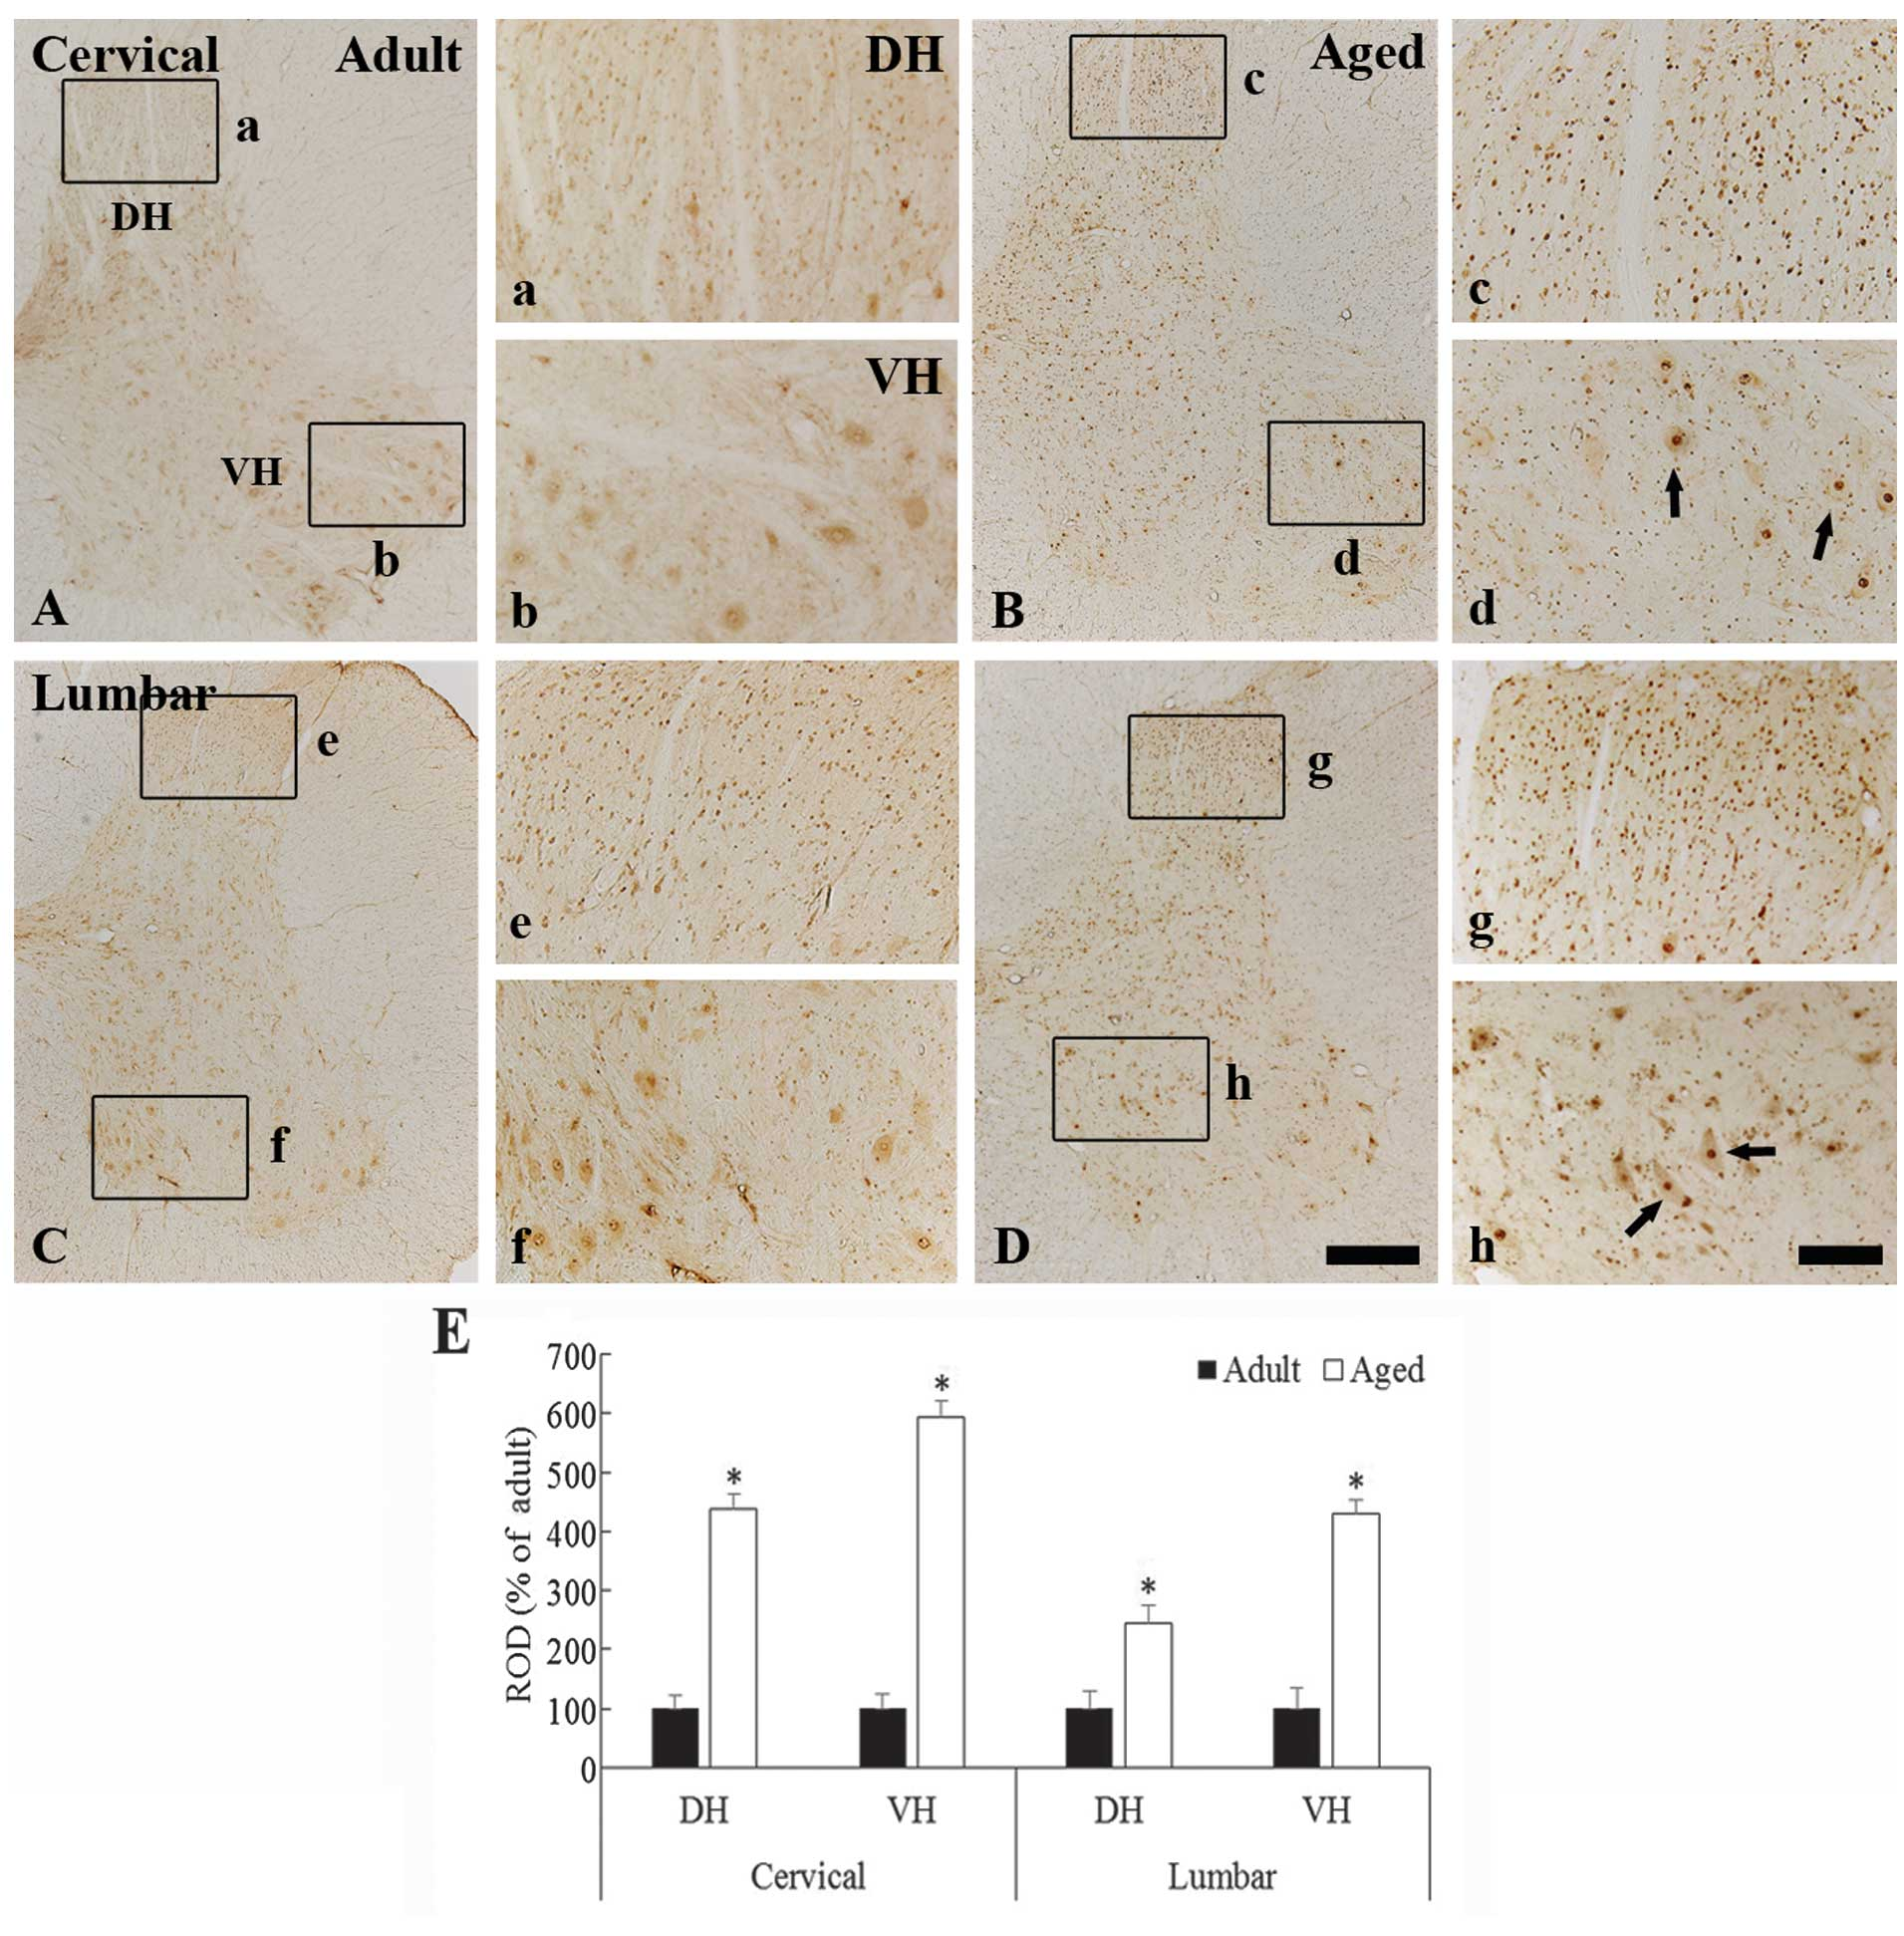 Increased Immunoreactivity Of Cfos In The Spinal Cord Of The Aged